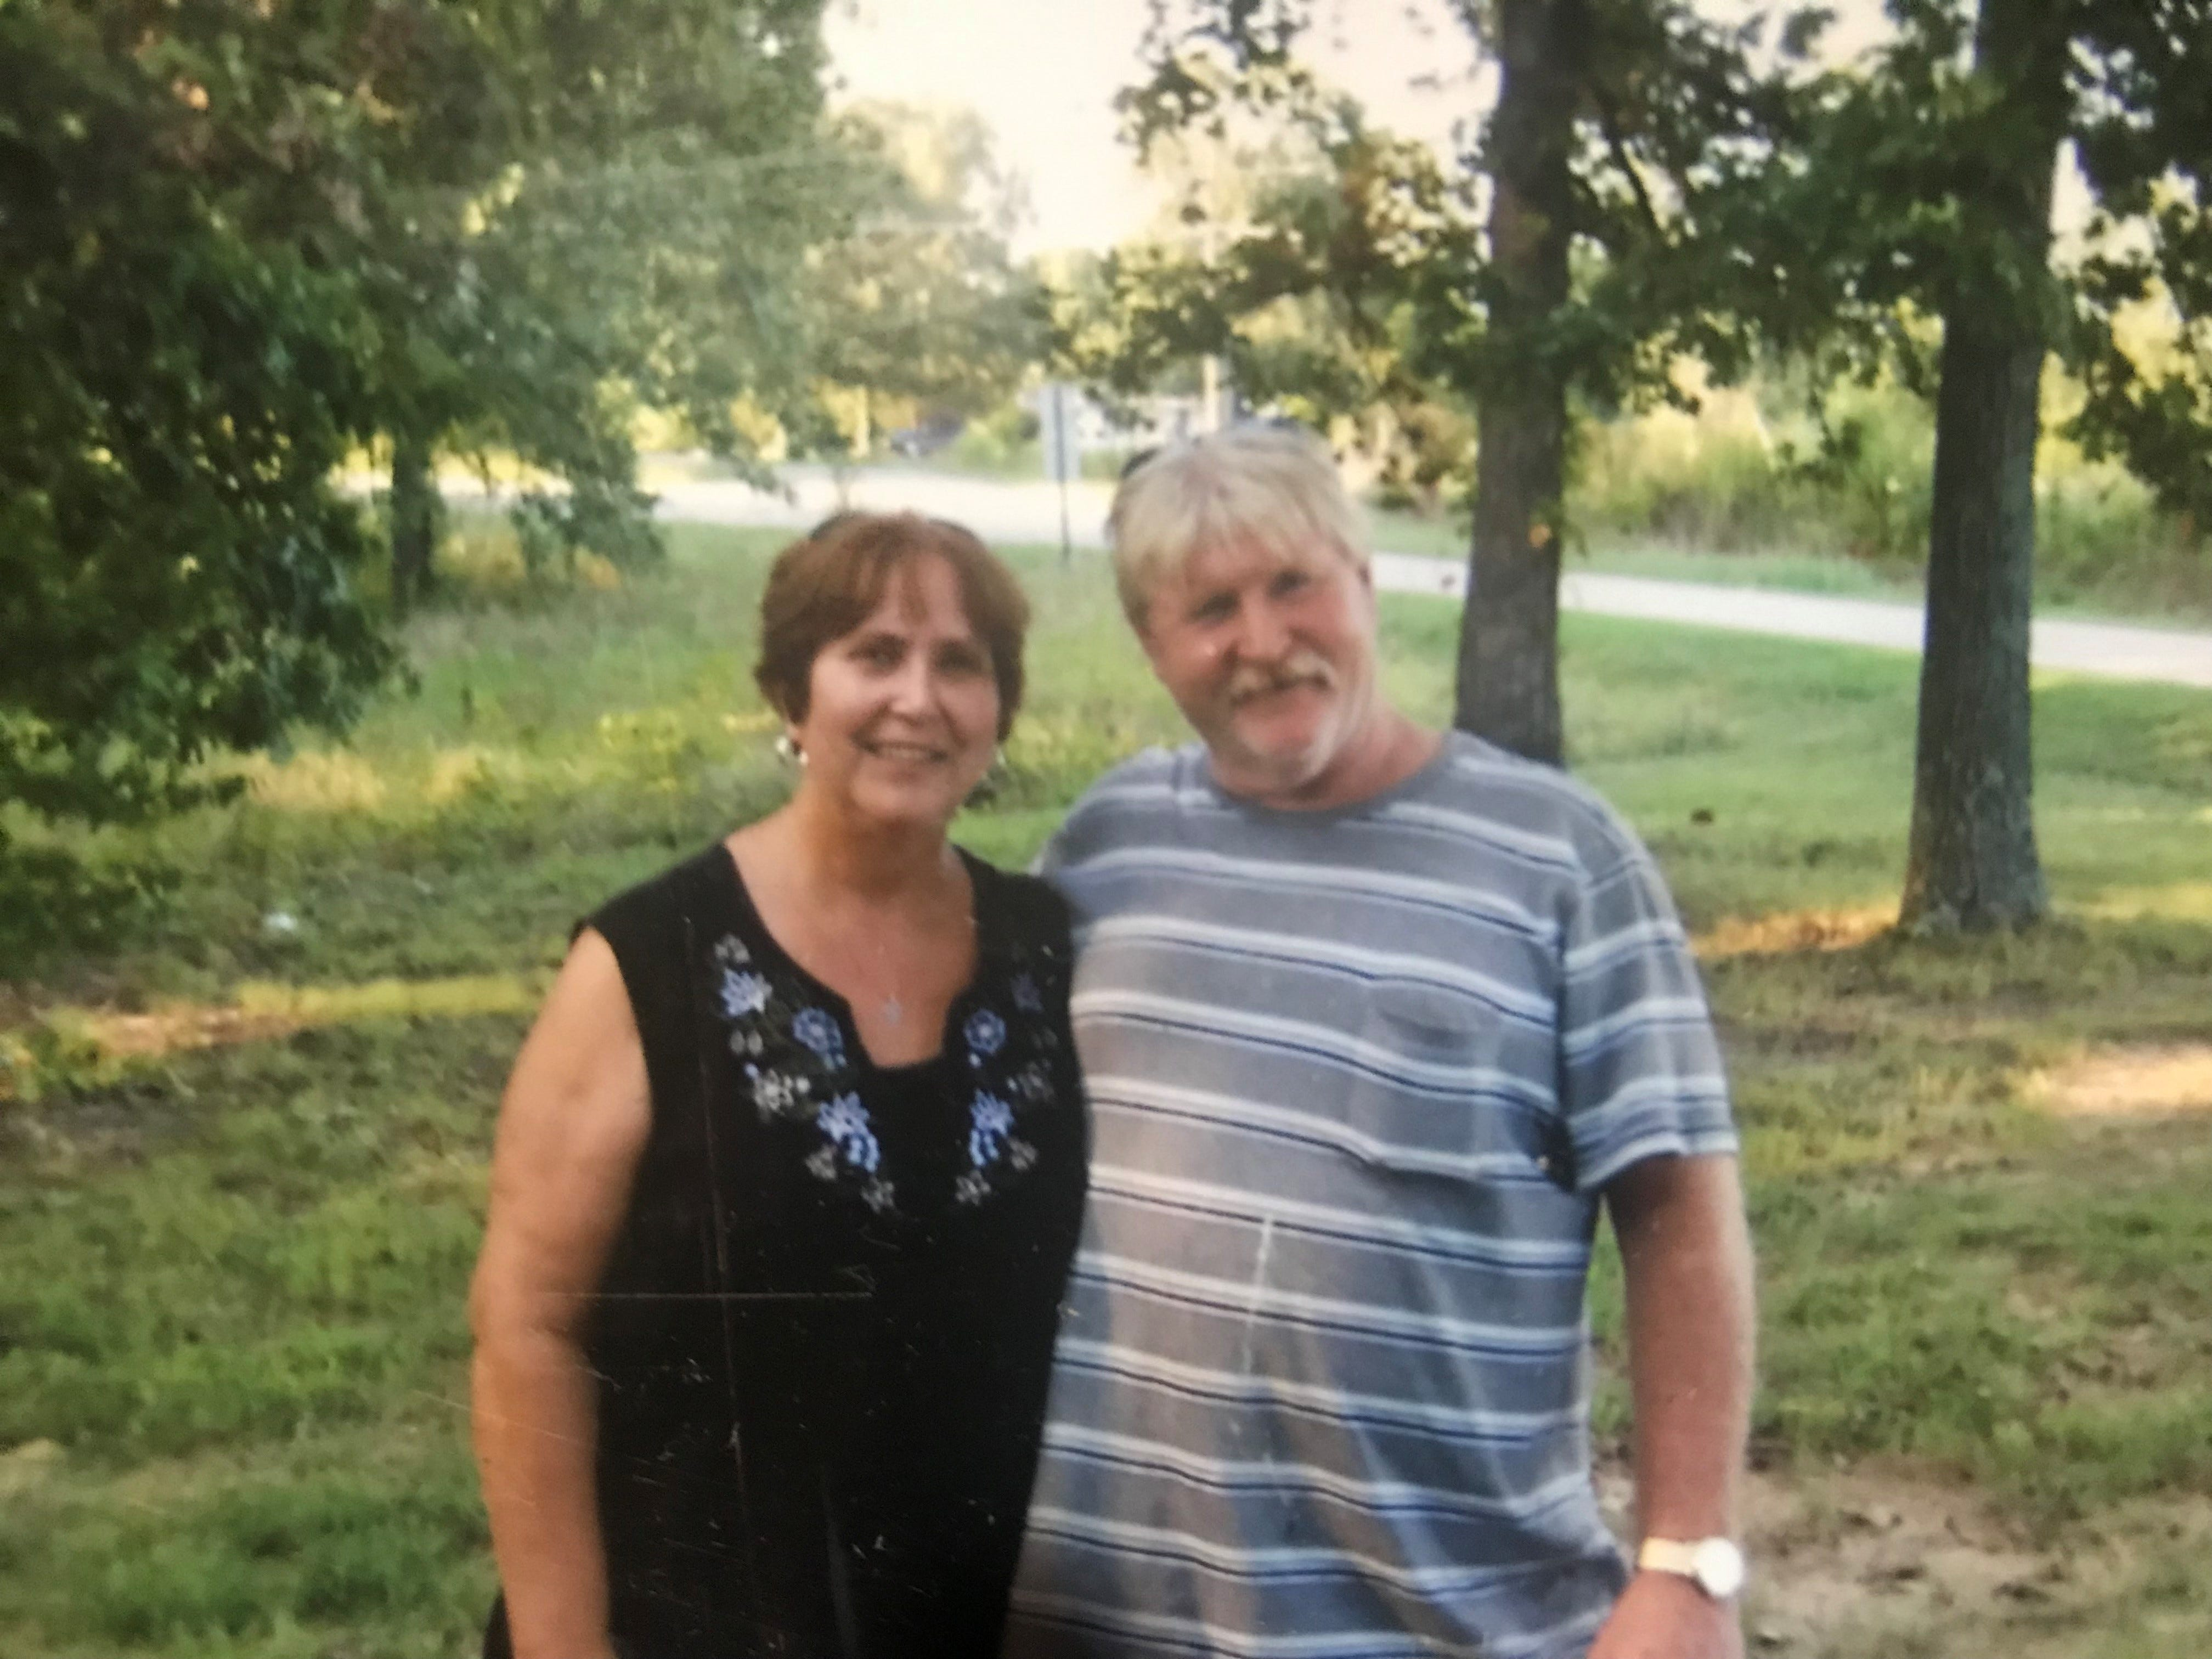 Photo of Carl Frazee, 67 and girlfriend Patricia Kendall